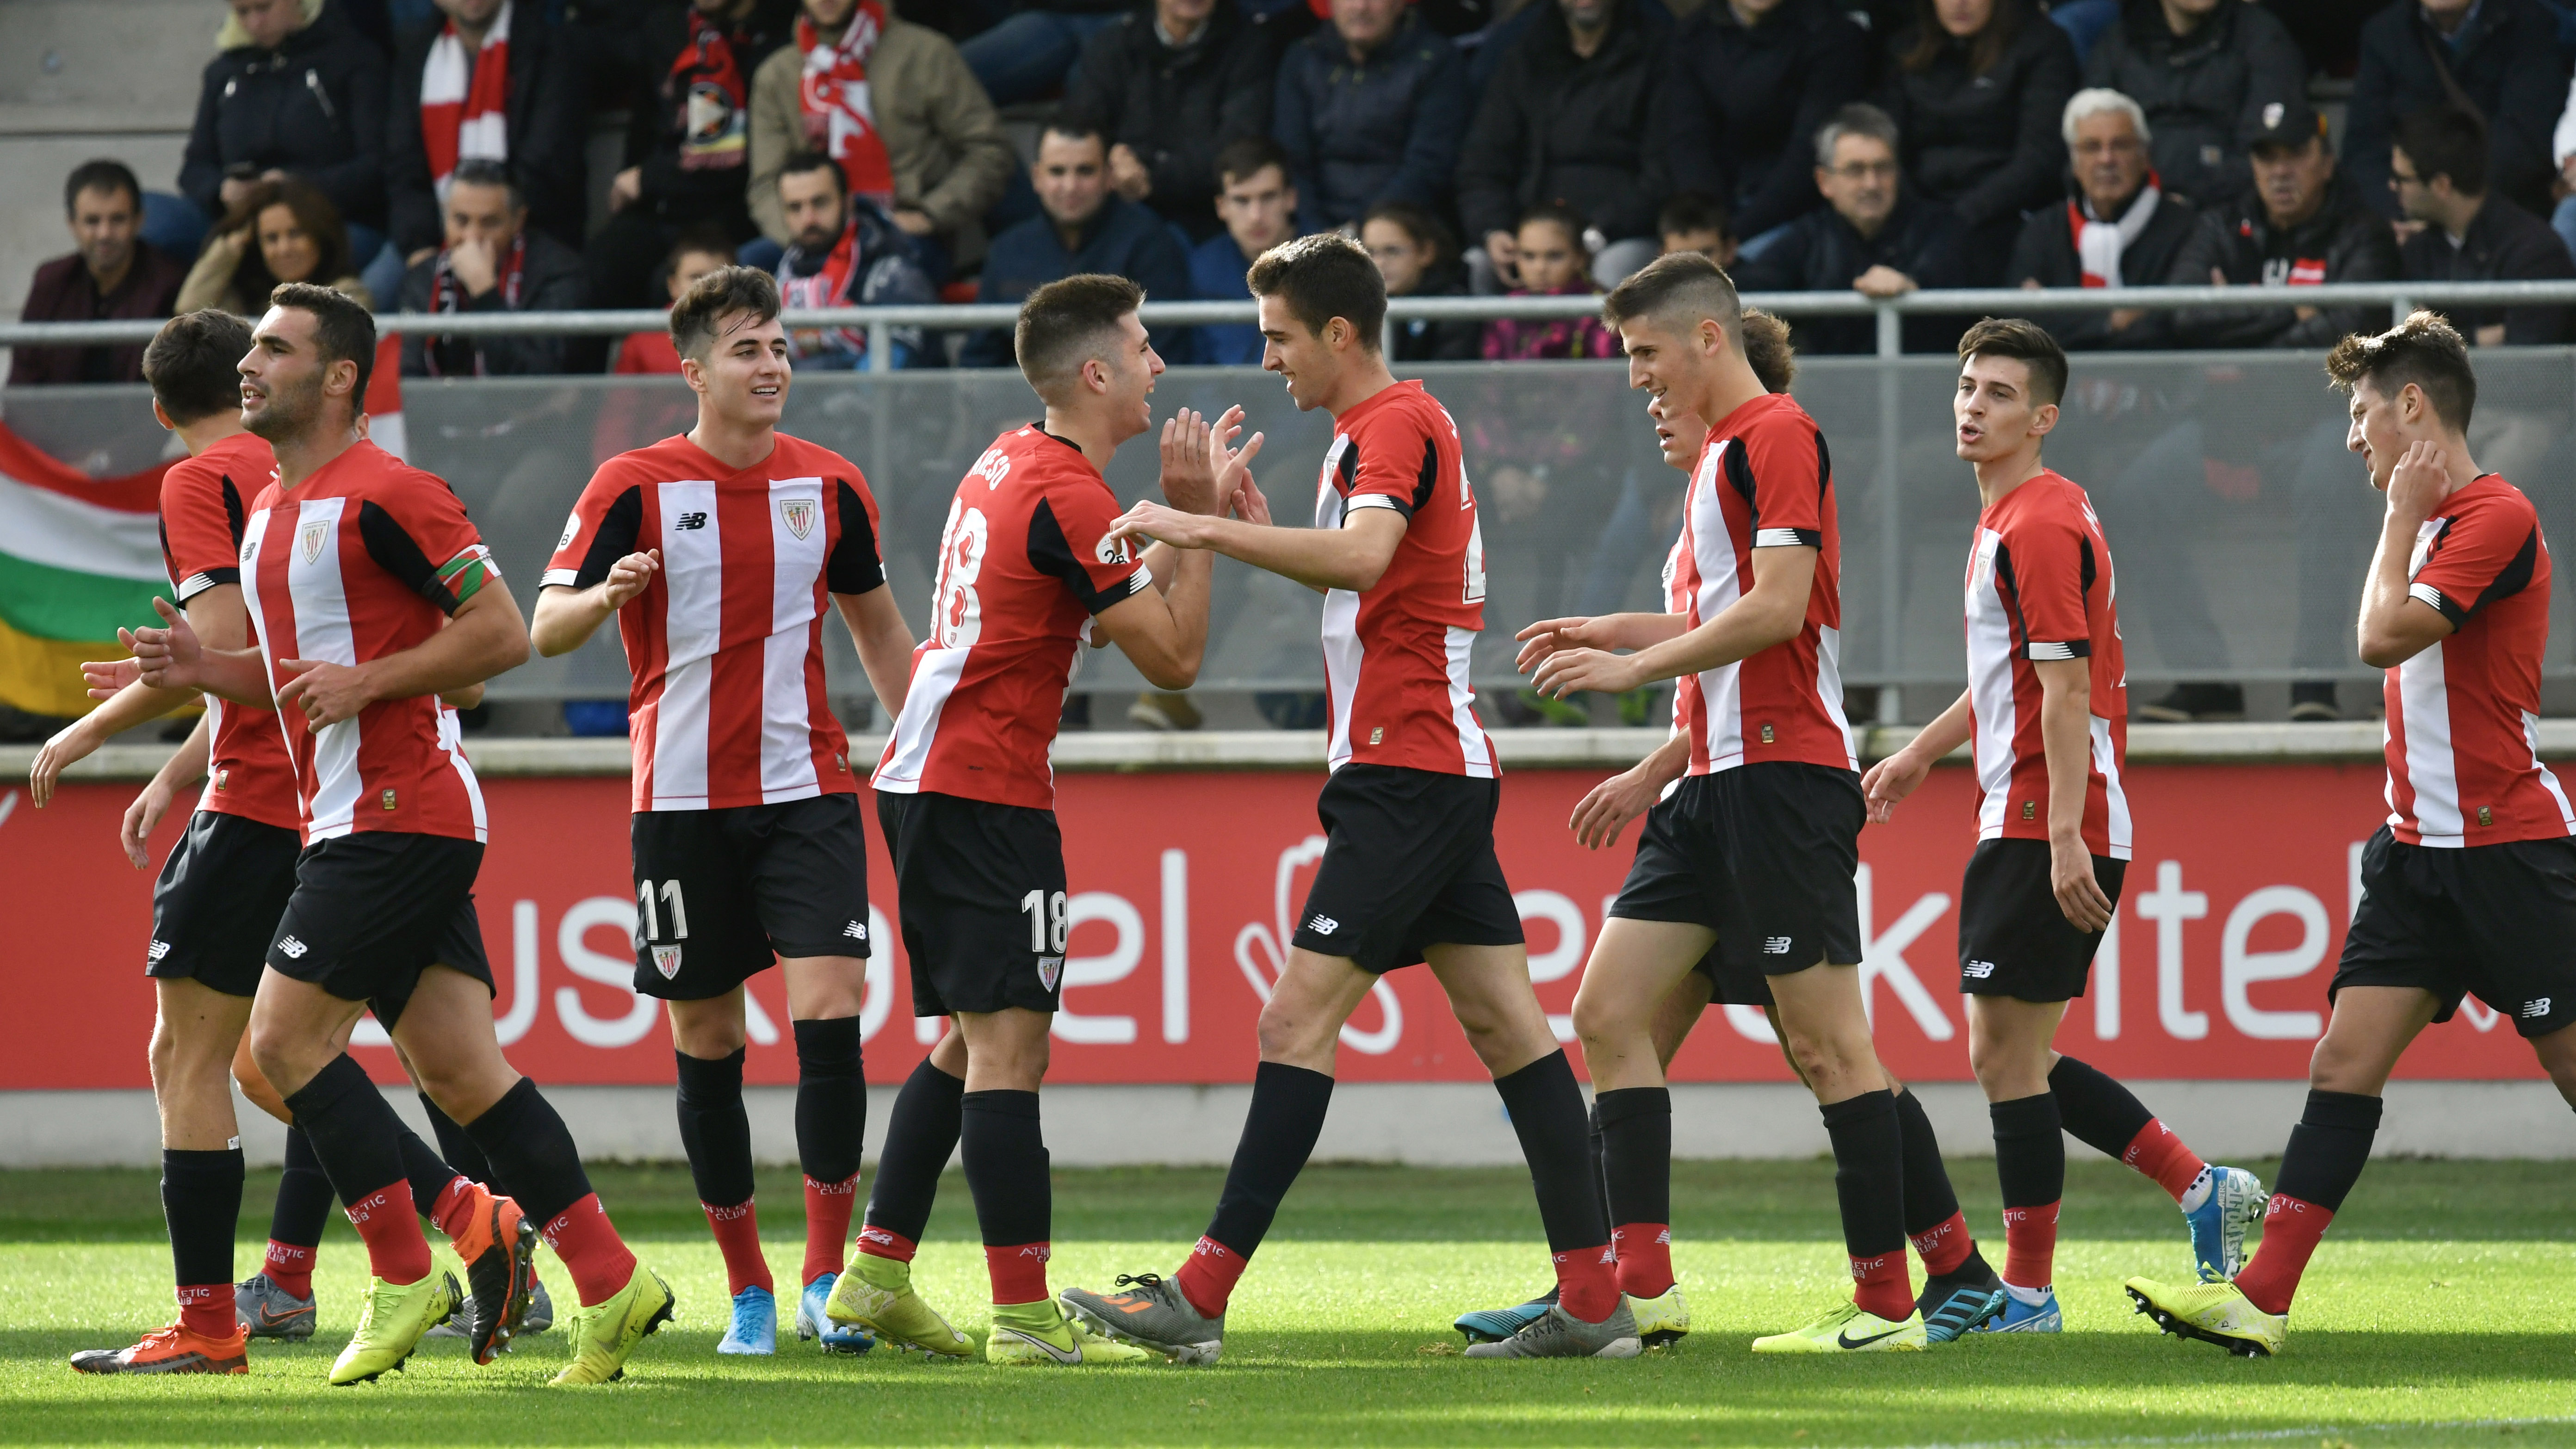 Bilbao Athletic come out winners from the clash between the top two teams